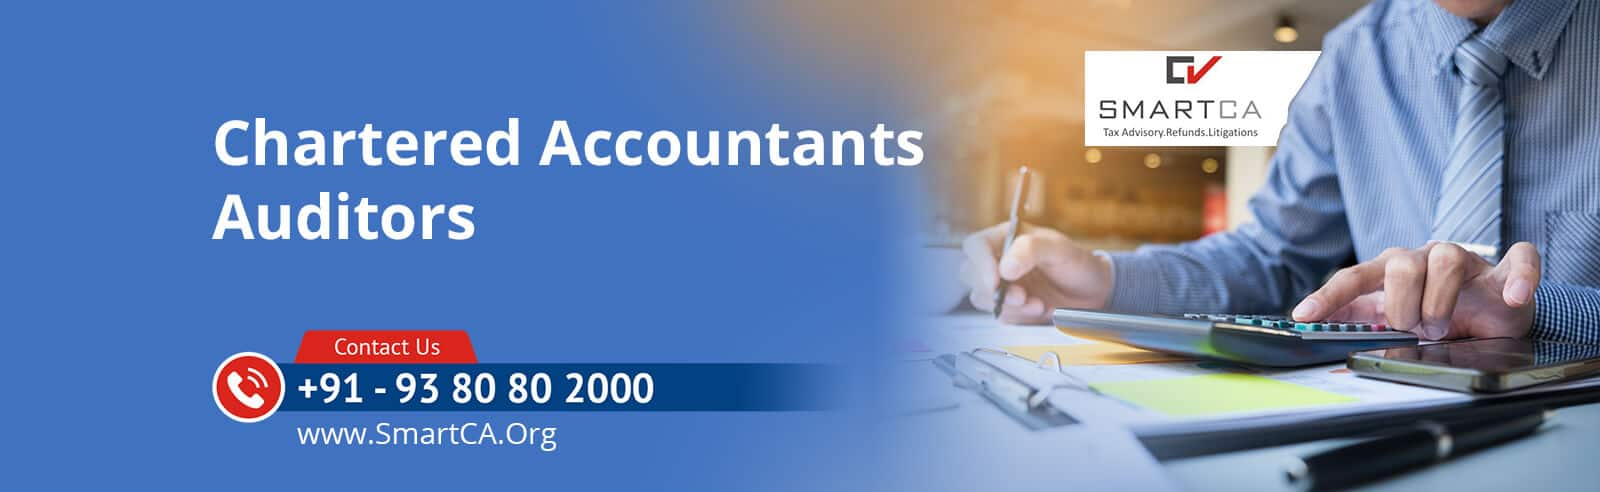 Auditors in Chennai UTHANDI